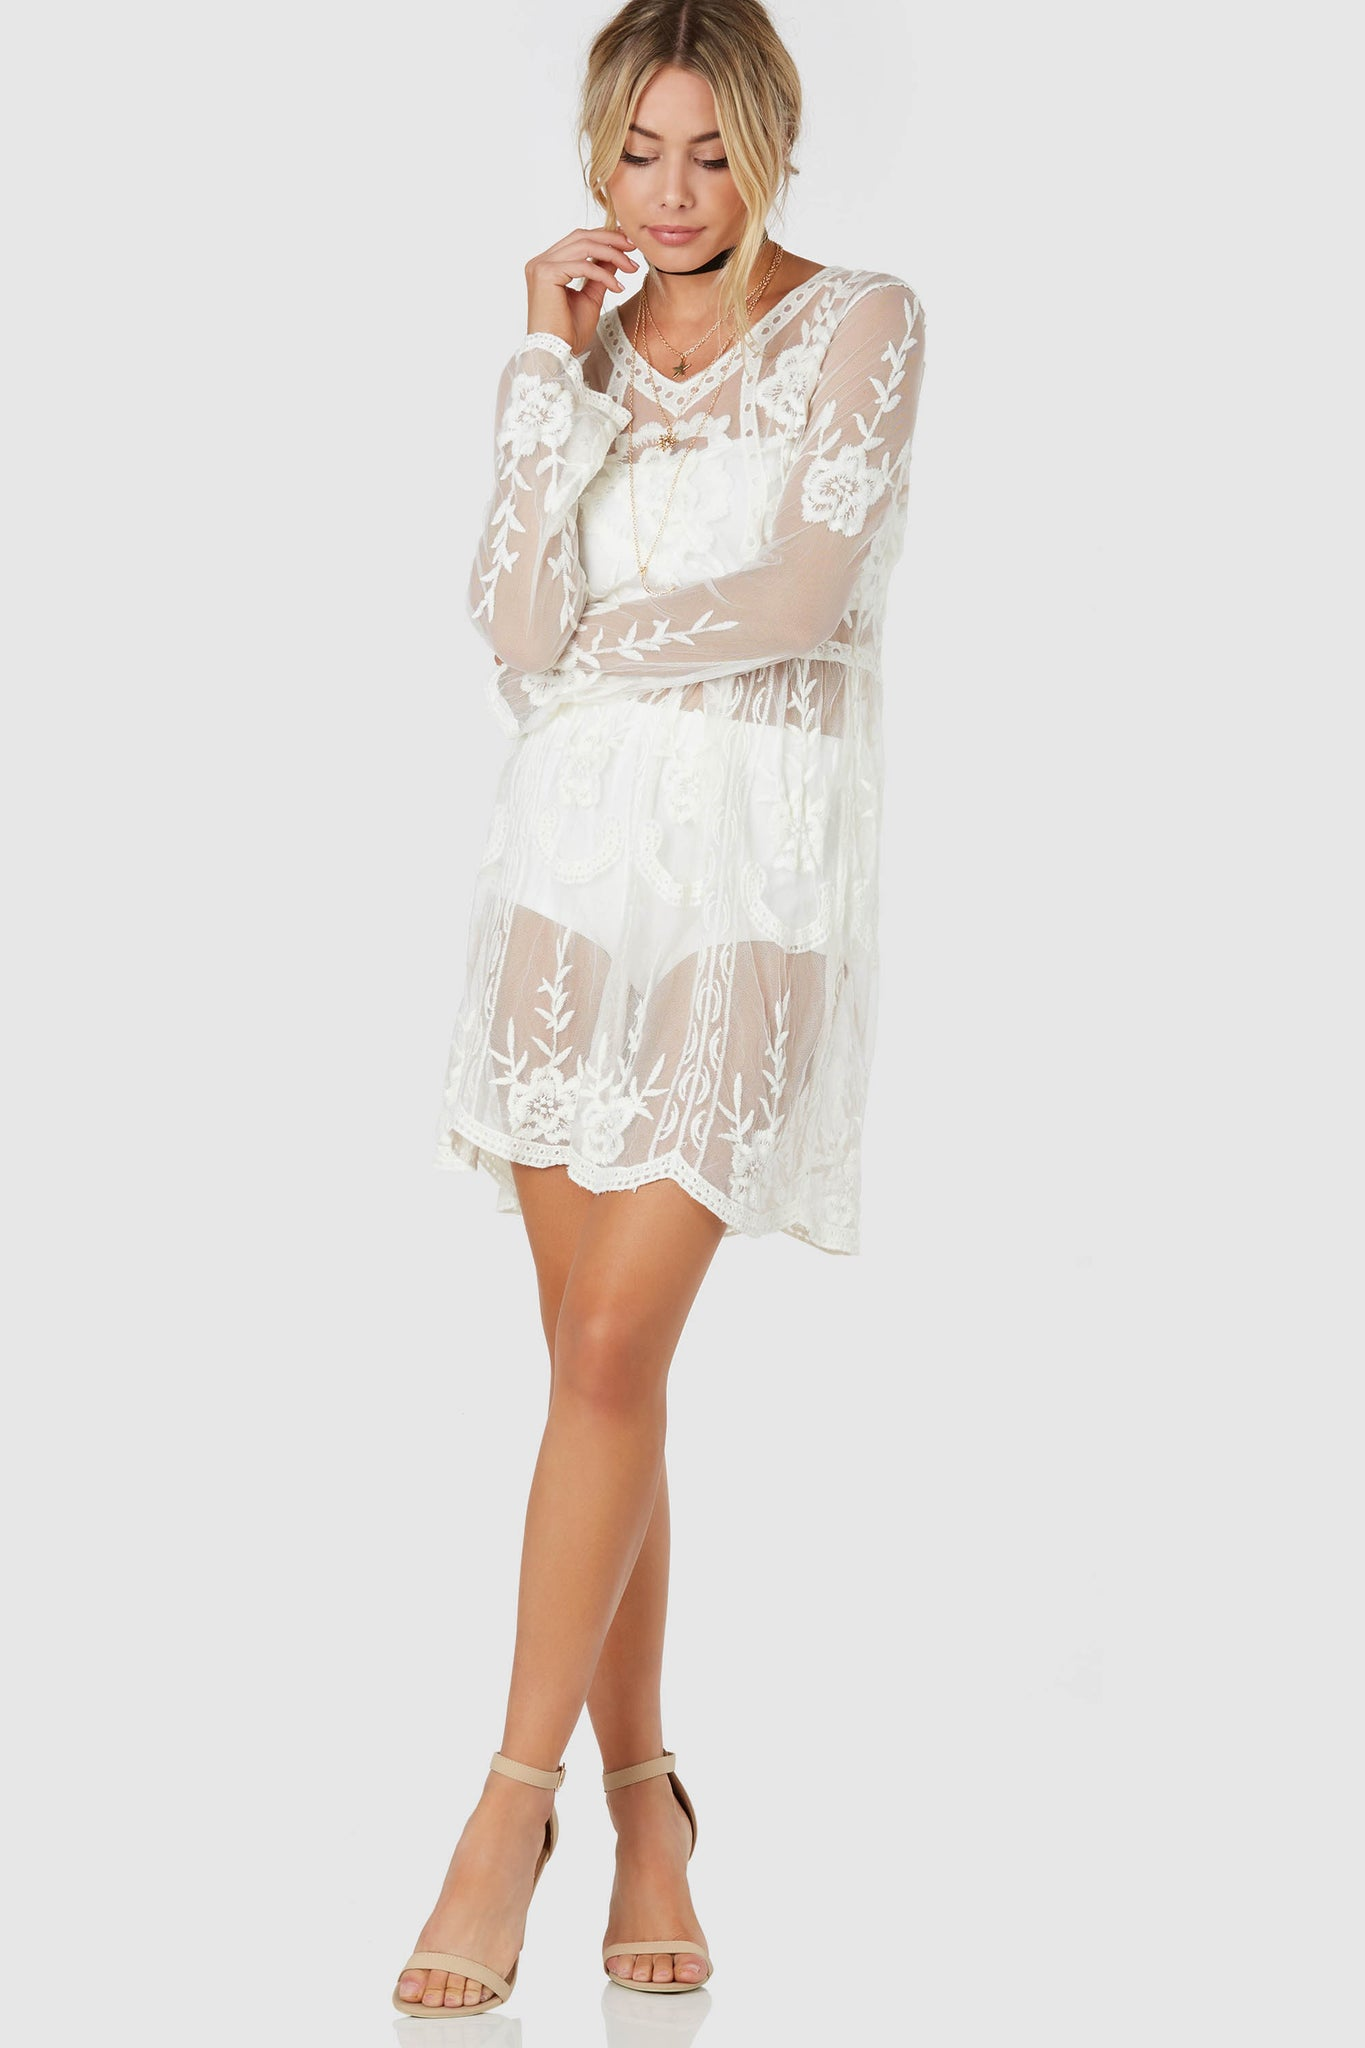 Stunning long sleeve tunic dress with mesh base and intricate crochet detailing throughout. Comes with tube top and bottoms for lining.